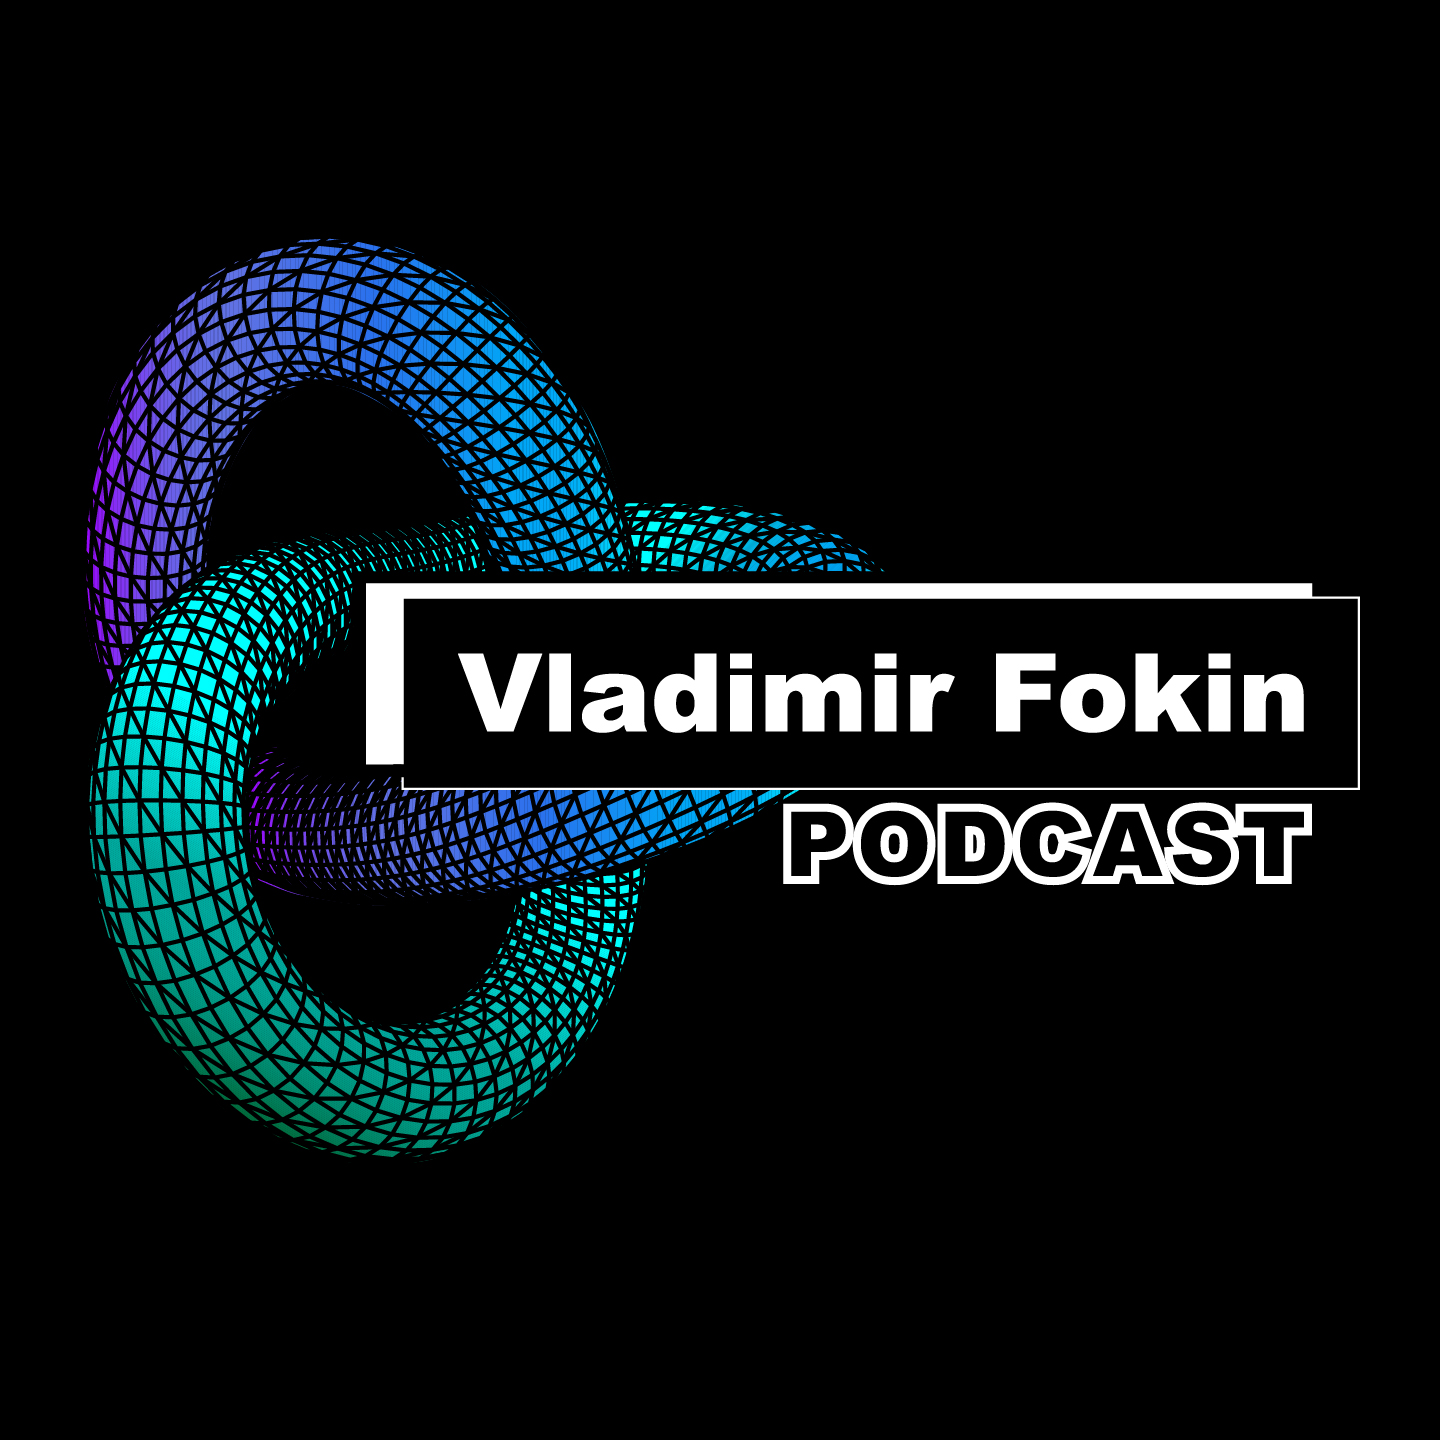 Vladimir Fokin Podcast